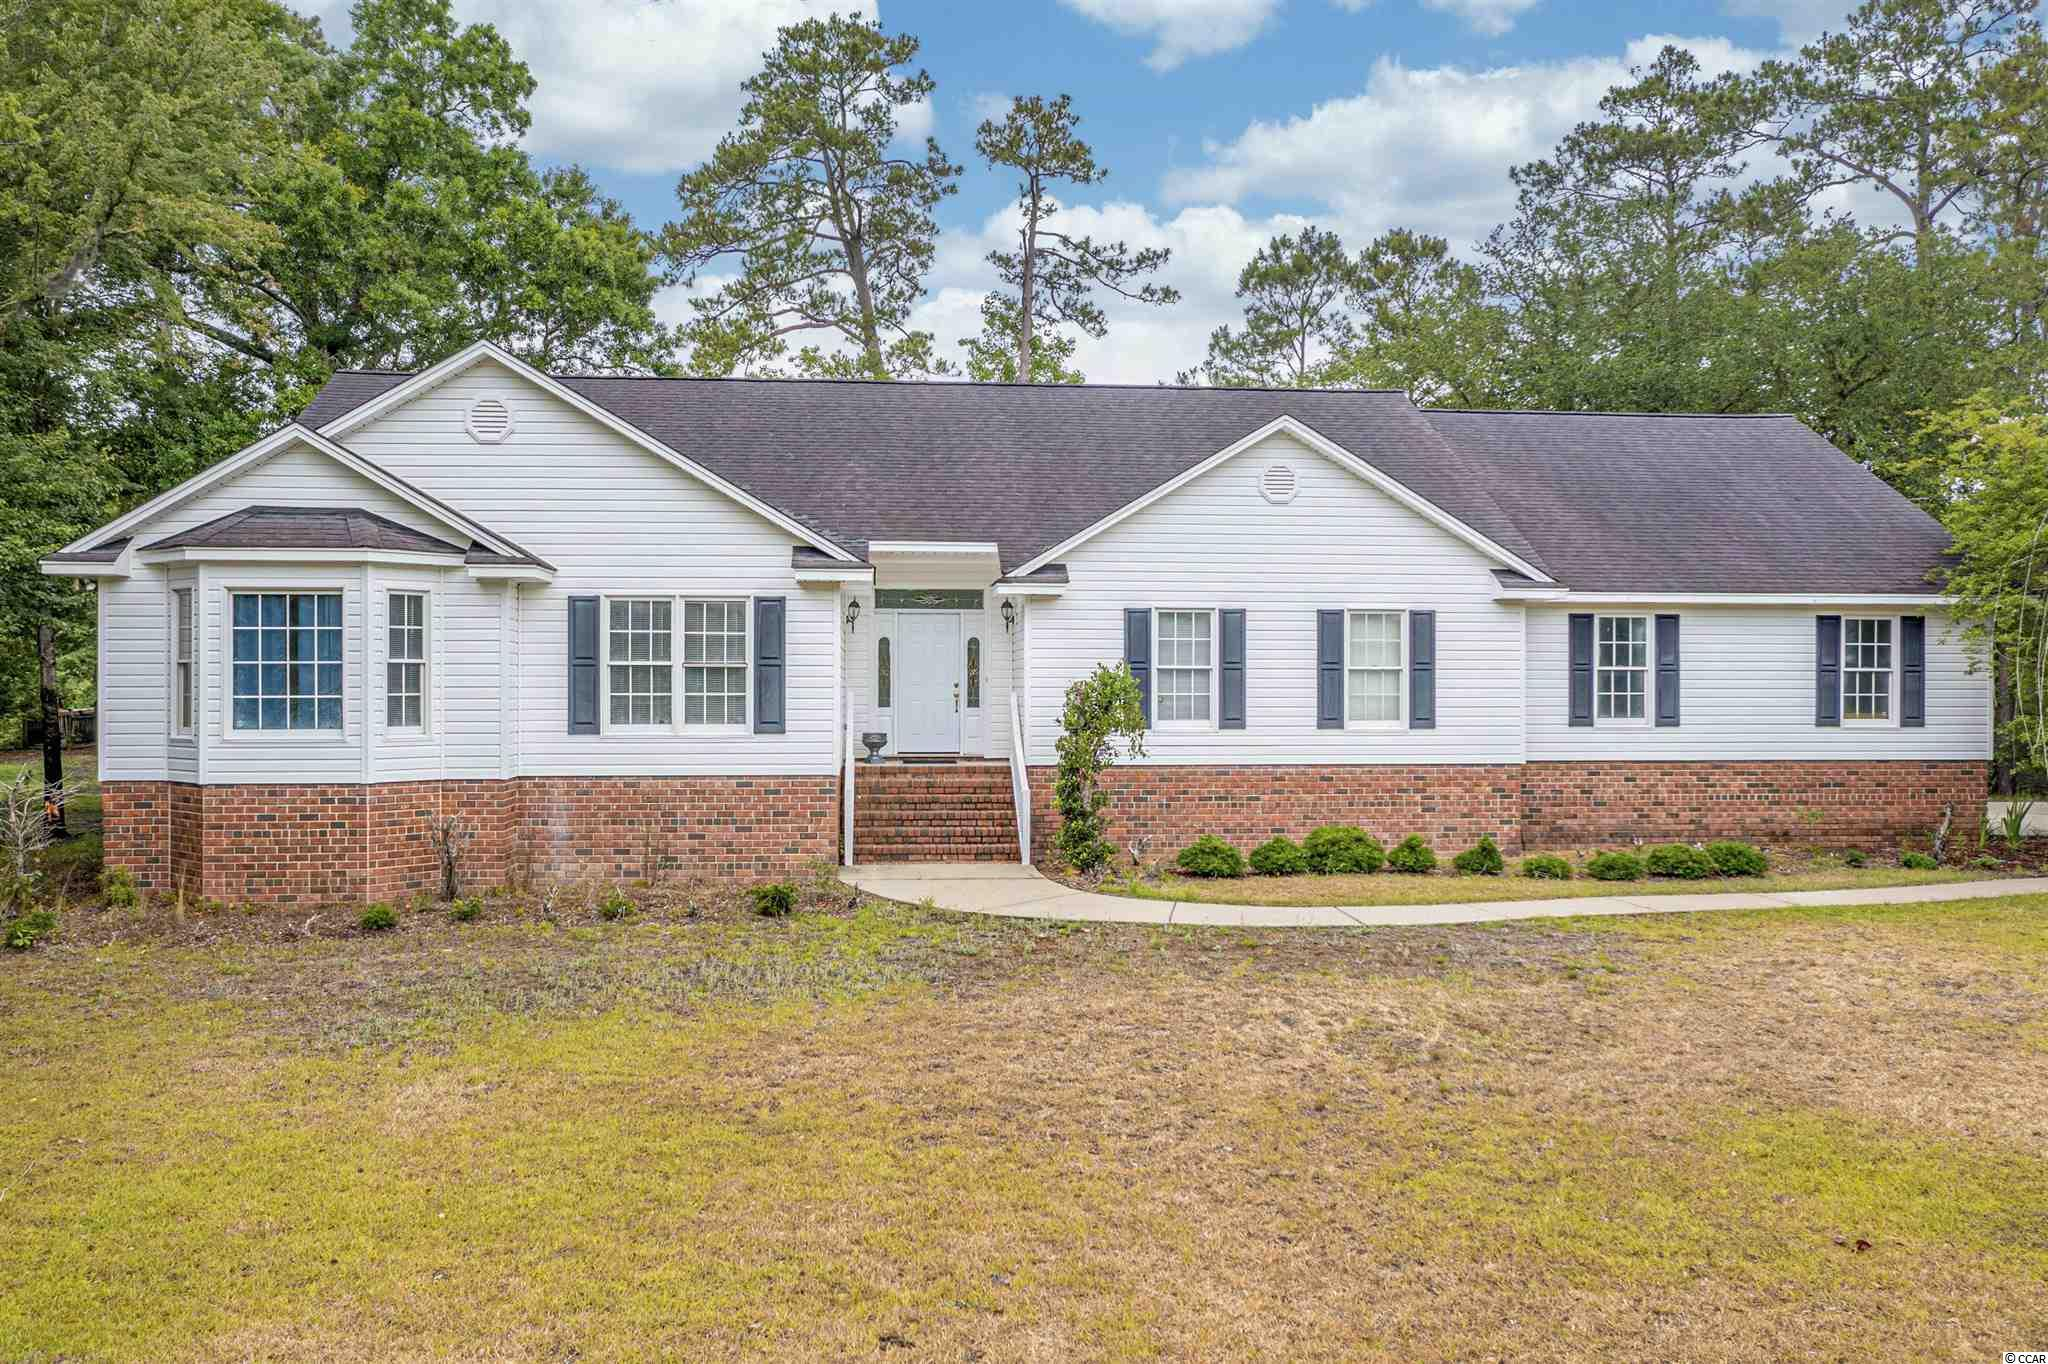 WATERFRONT with deck and deep water dock on Waccamaw river...approx. 5 acre pond in front of house...less than 15 minutes to Myrtle Beach, downtown Conway...ideal quiet neighborhood setting with a little country flare...located just off of Old Reaves Ferry Rd. and Hwy. 90 with easy access to Hwy. 22...bring your fishing pole and enjoy a little R&R on your river front property. This property is a handy mans dream, it just needs the finishing touches to make this home your own.